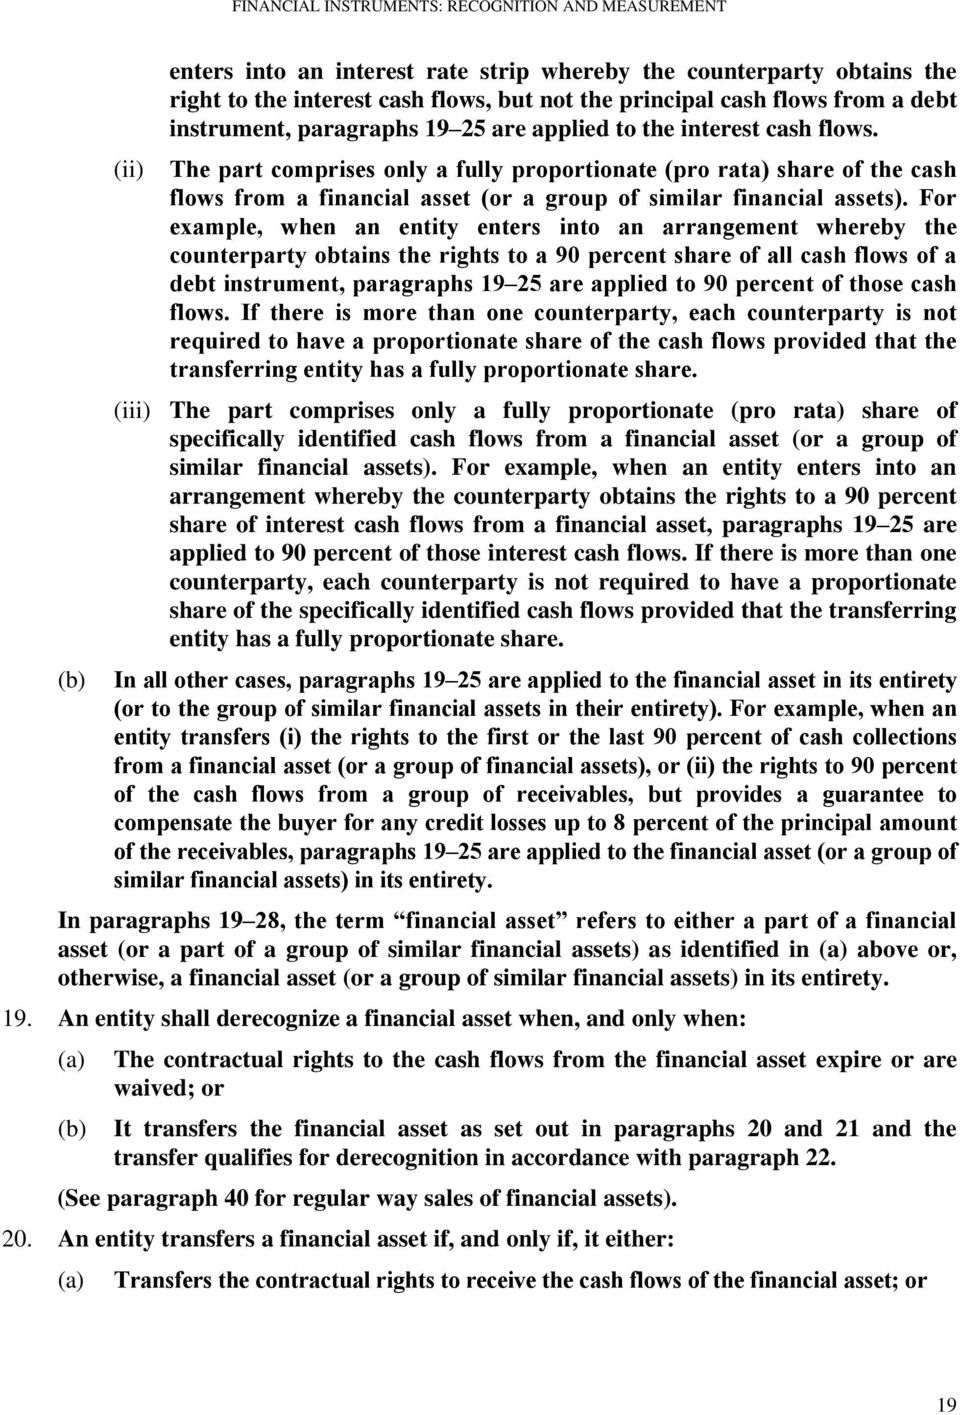 For example, when an entity enters into an arrangement whereby the counterparty obtains the rights to a 90 percent share of all cash flows of a debt instrument, paragraphs 19 25 are applied to 90